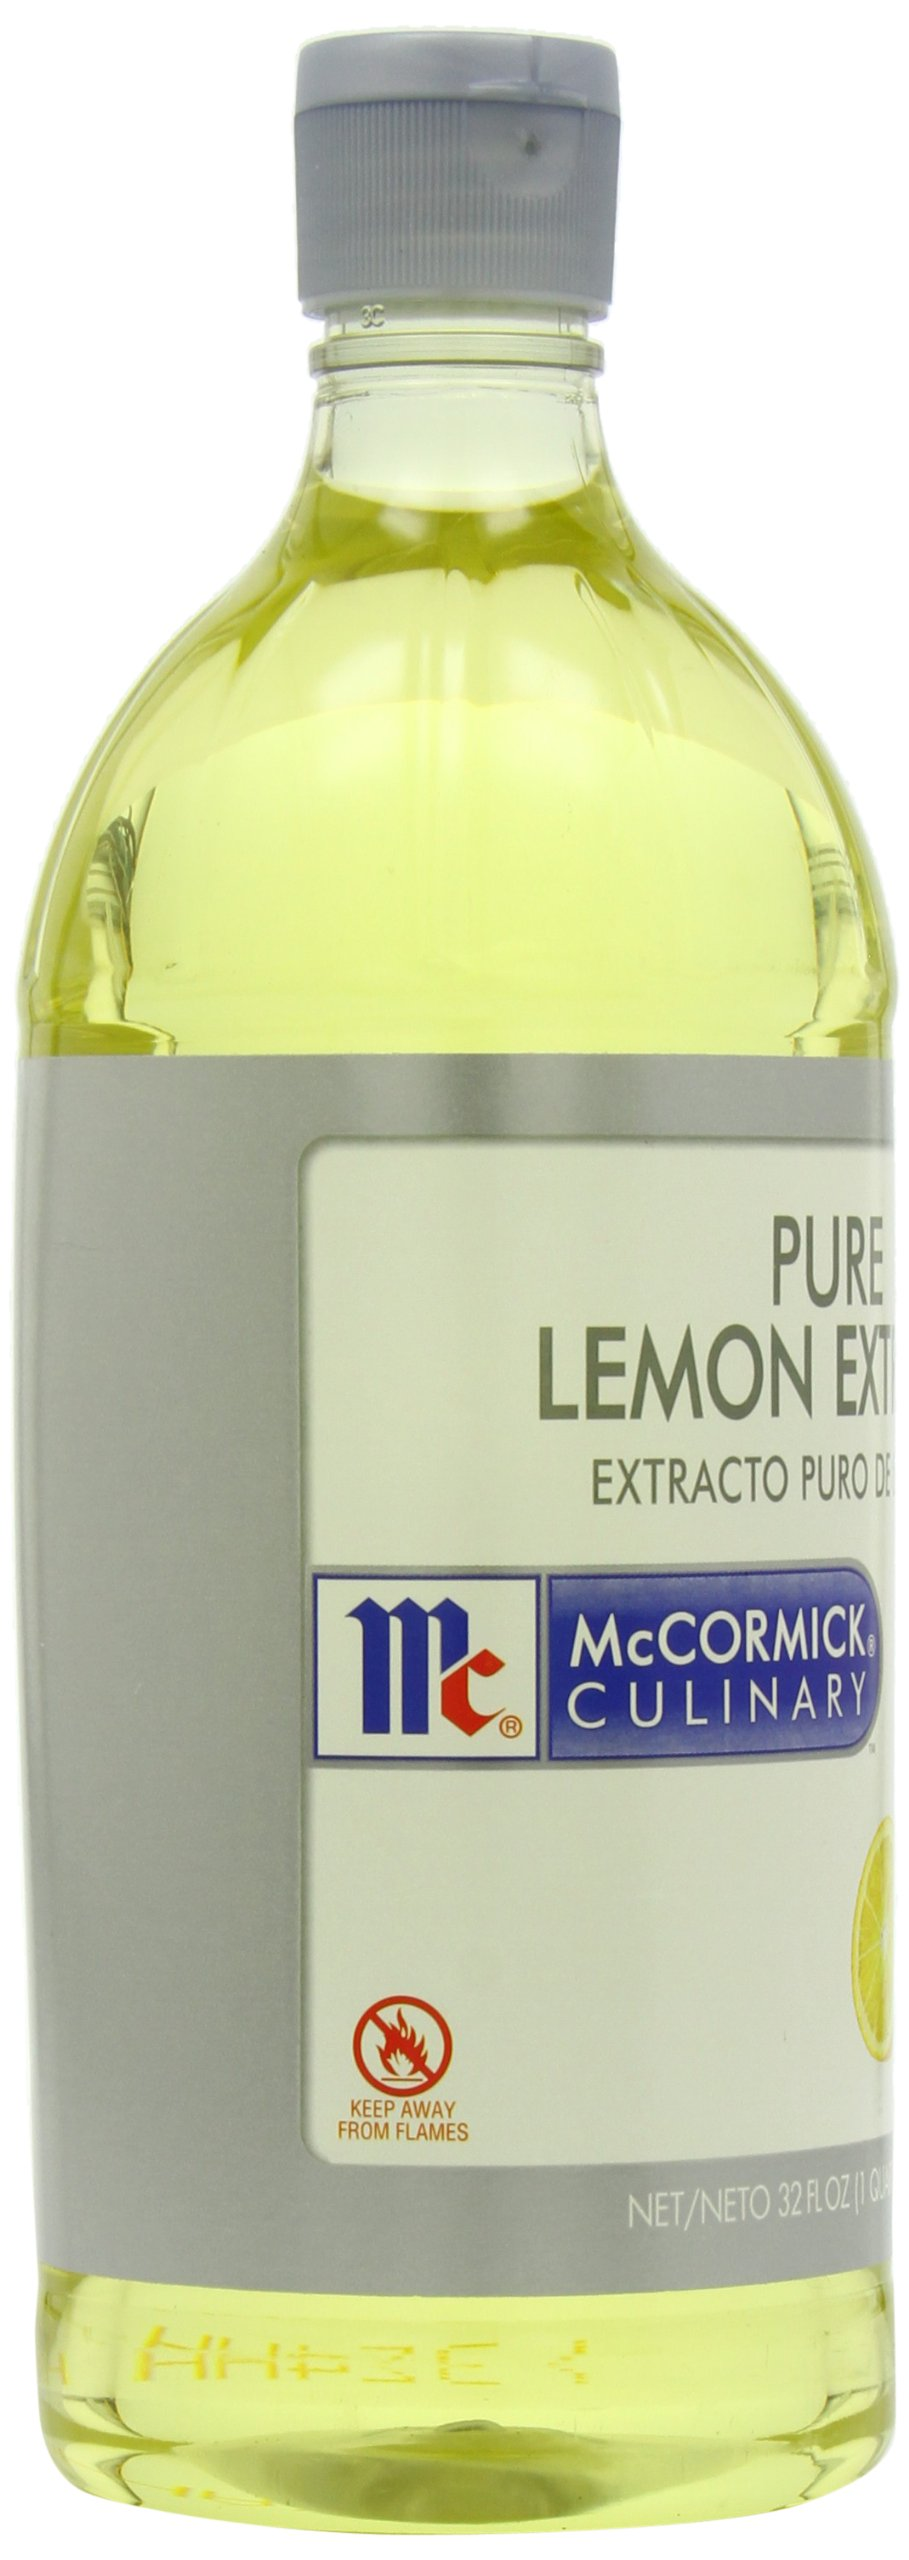 McCormick Culinary Pure Lemon Extract, 32 fl oz by McCormick (Image #7)